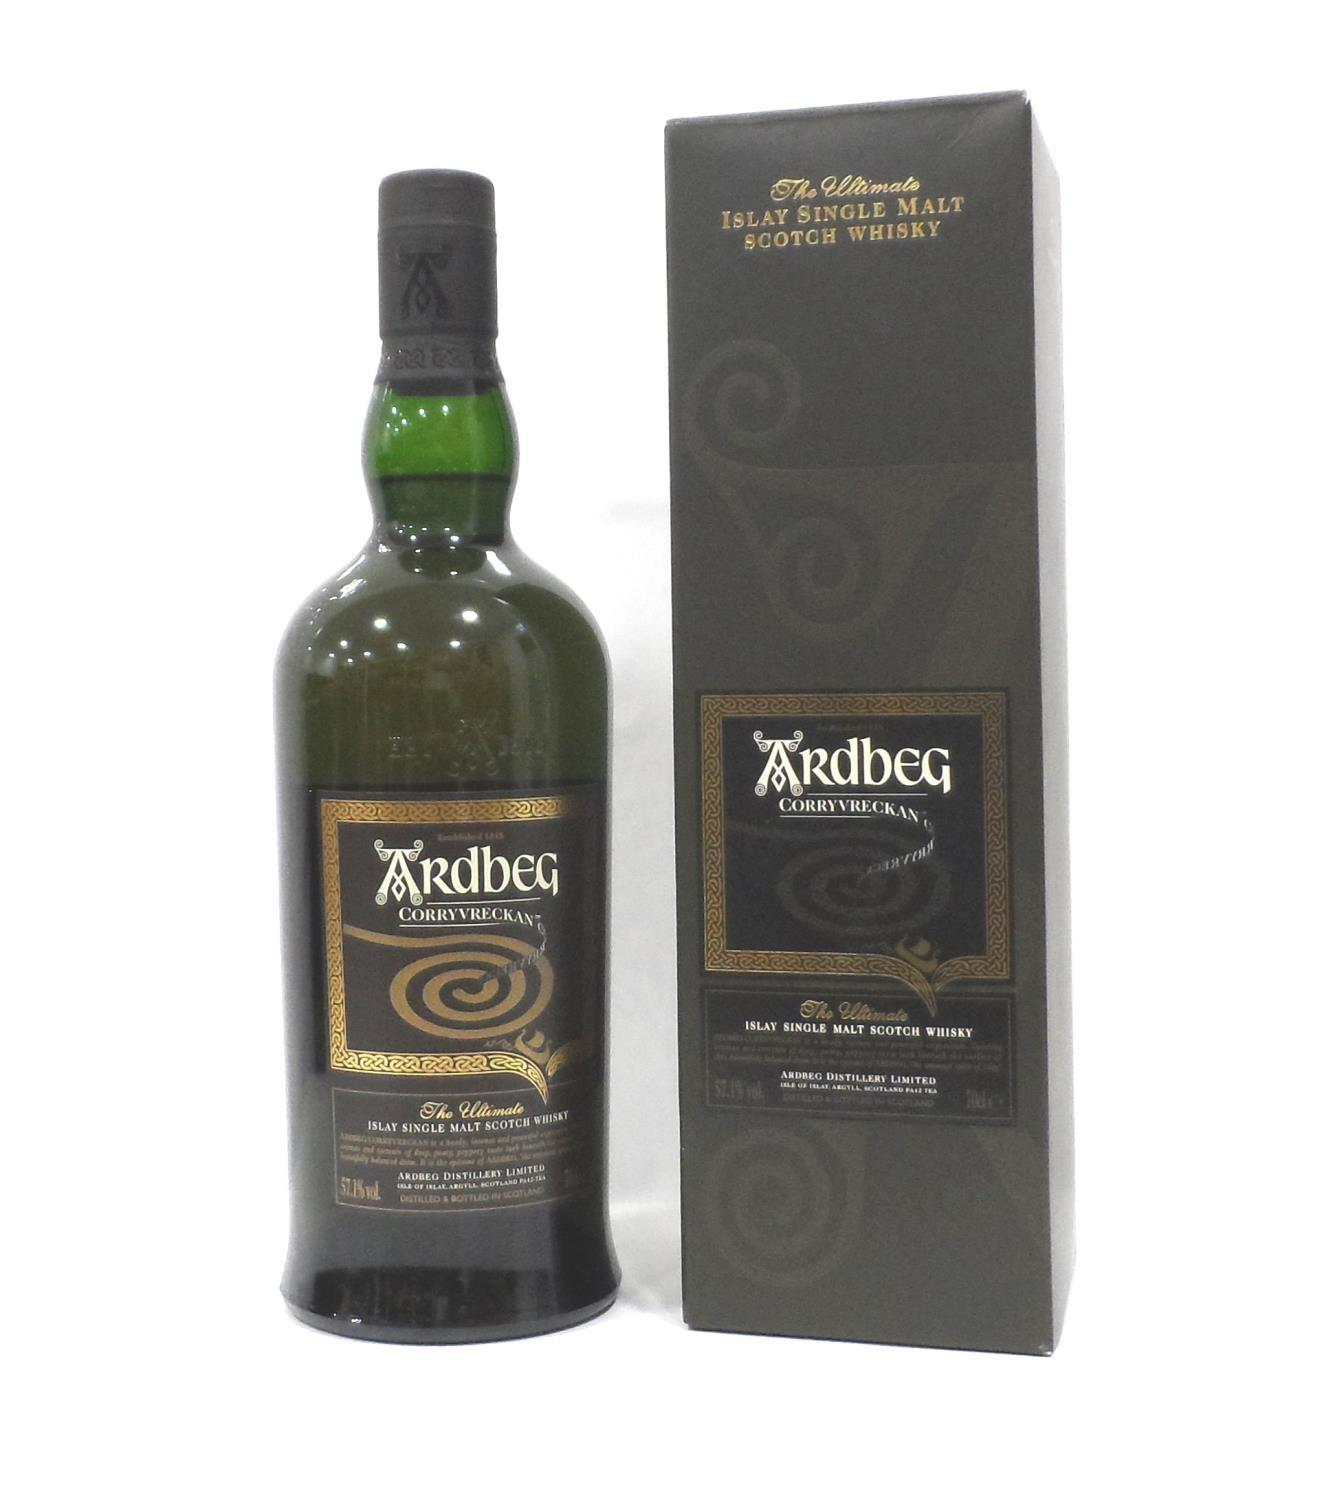 Lot 22 - ARDBEG CORRYVRECKAN Ardbeg used to do fantastic animations and short films to celebrate new releases